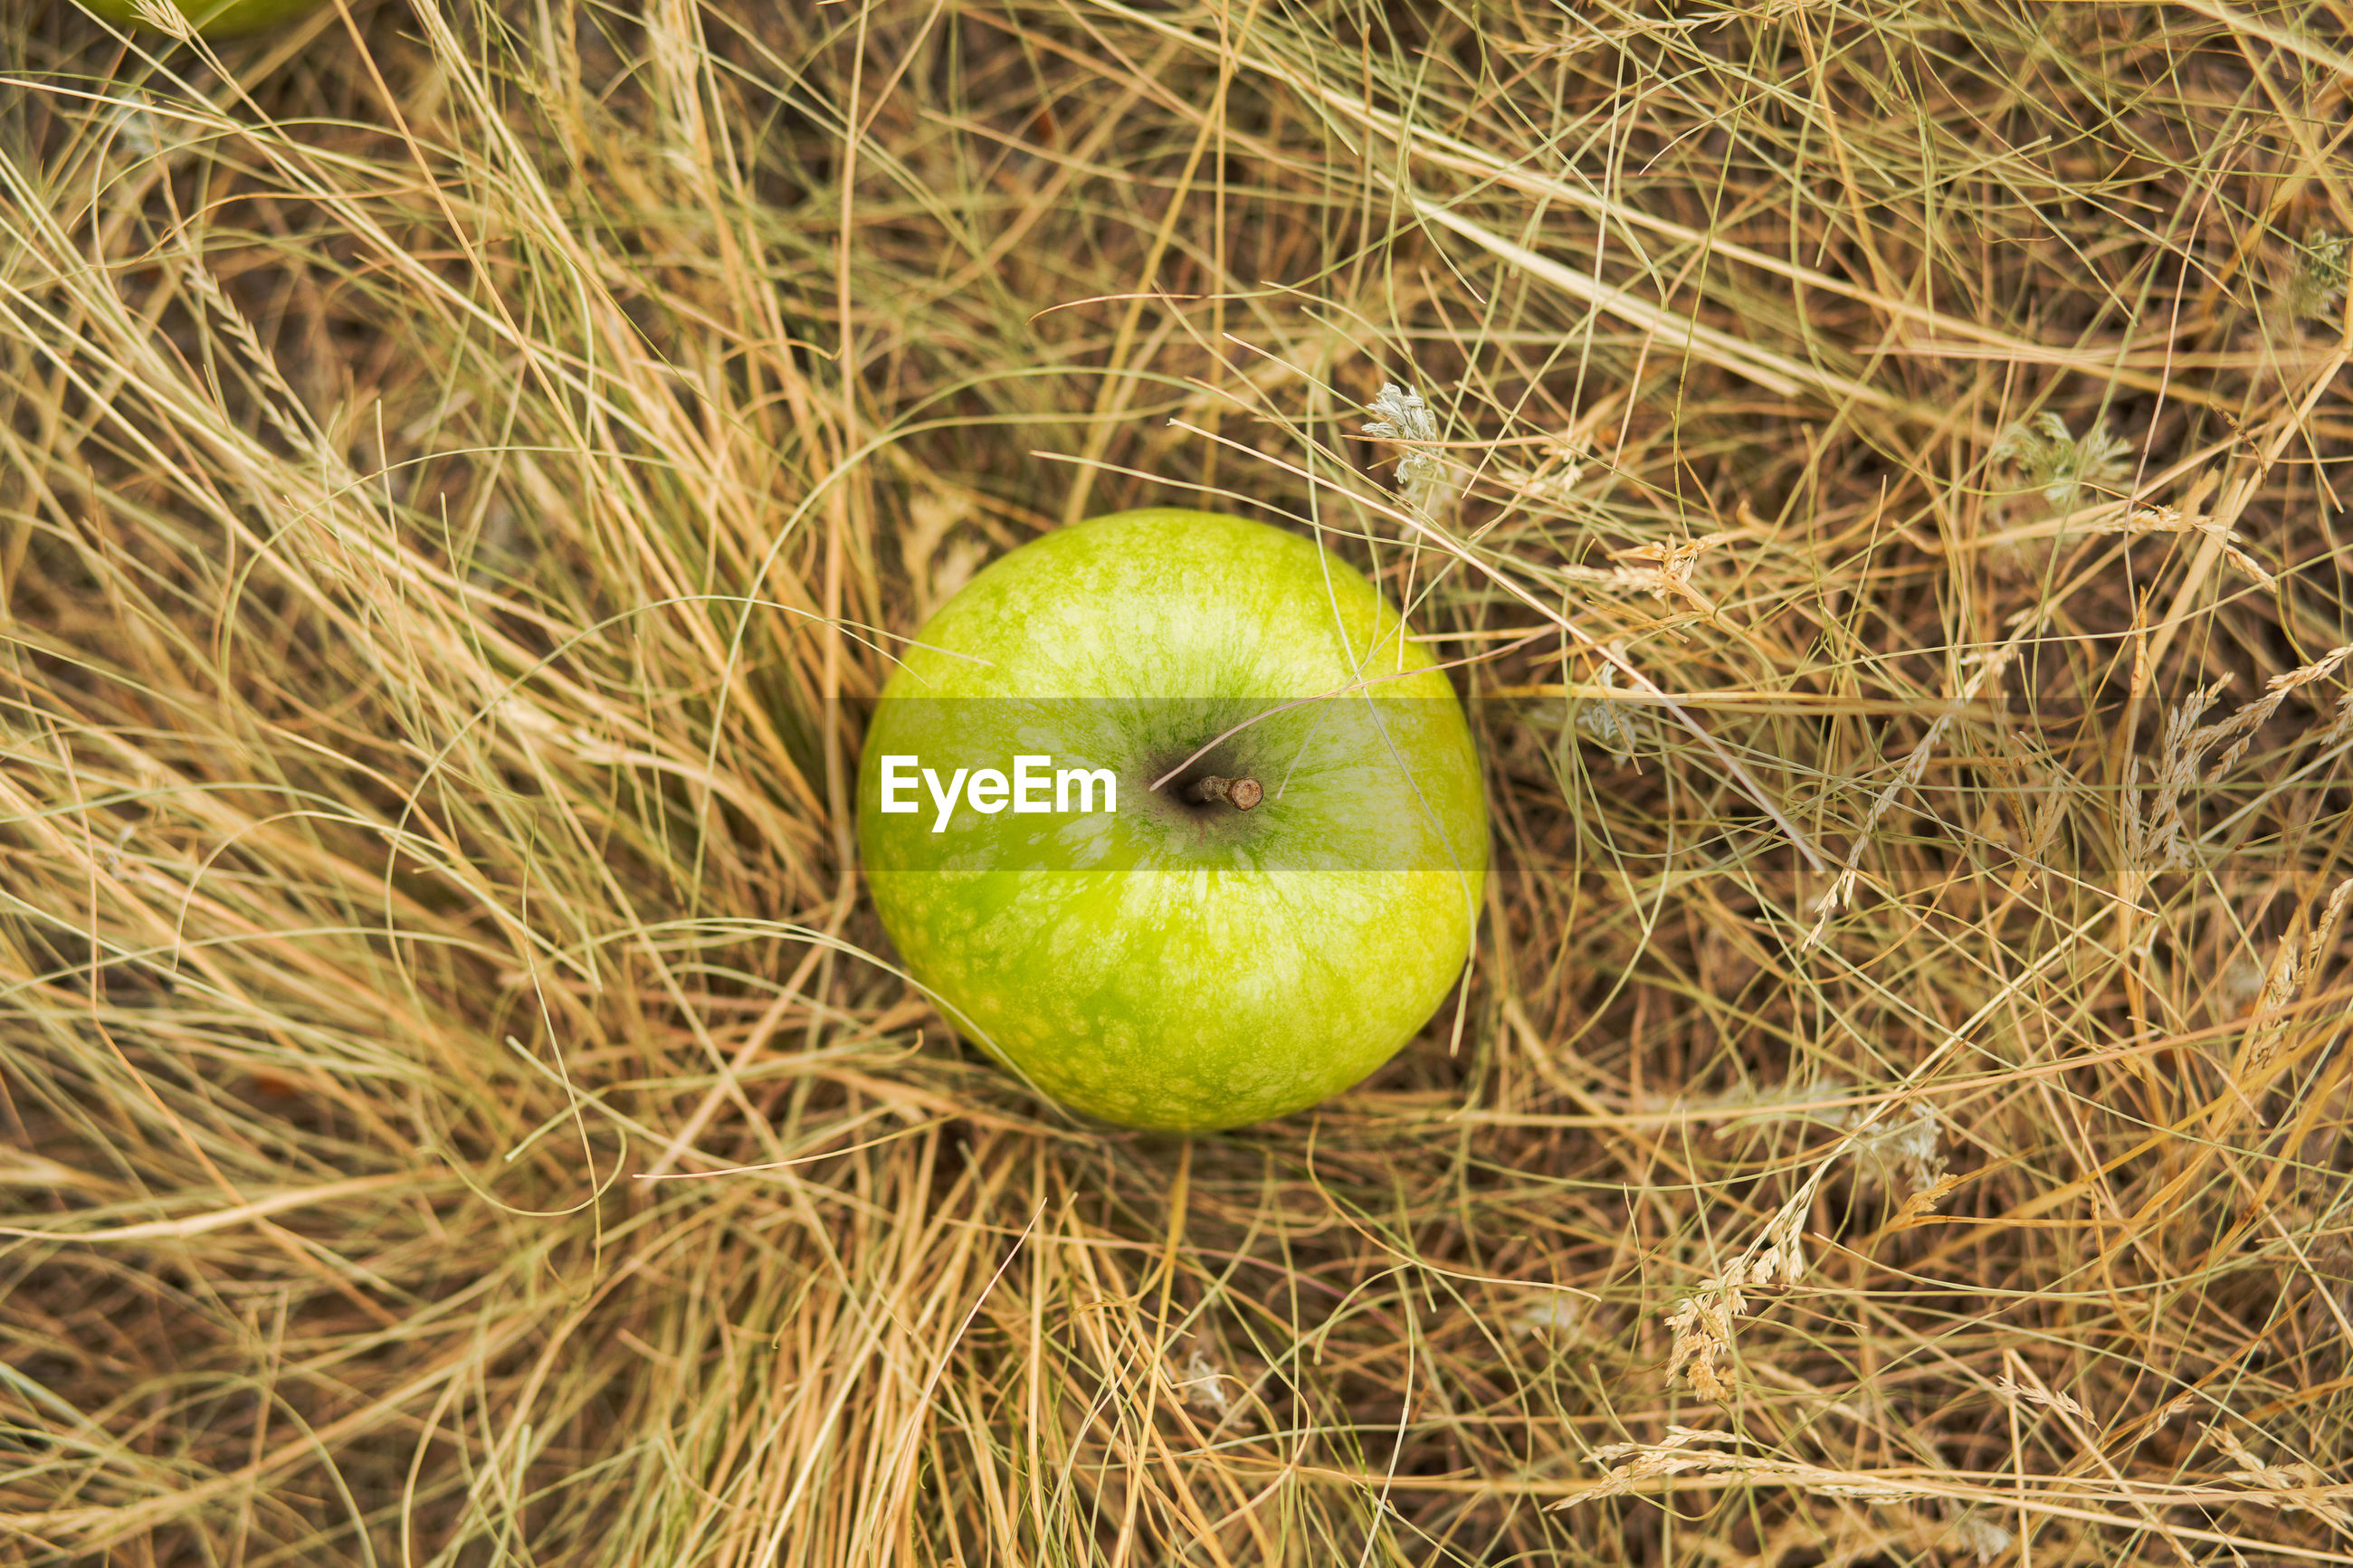 fruit, apple - fruit, food, food and drink, green color, healthy eating, grass, freshness, no people, nature, close-up, day, outdoors